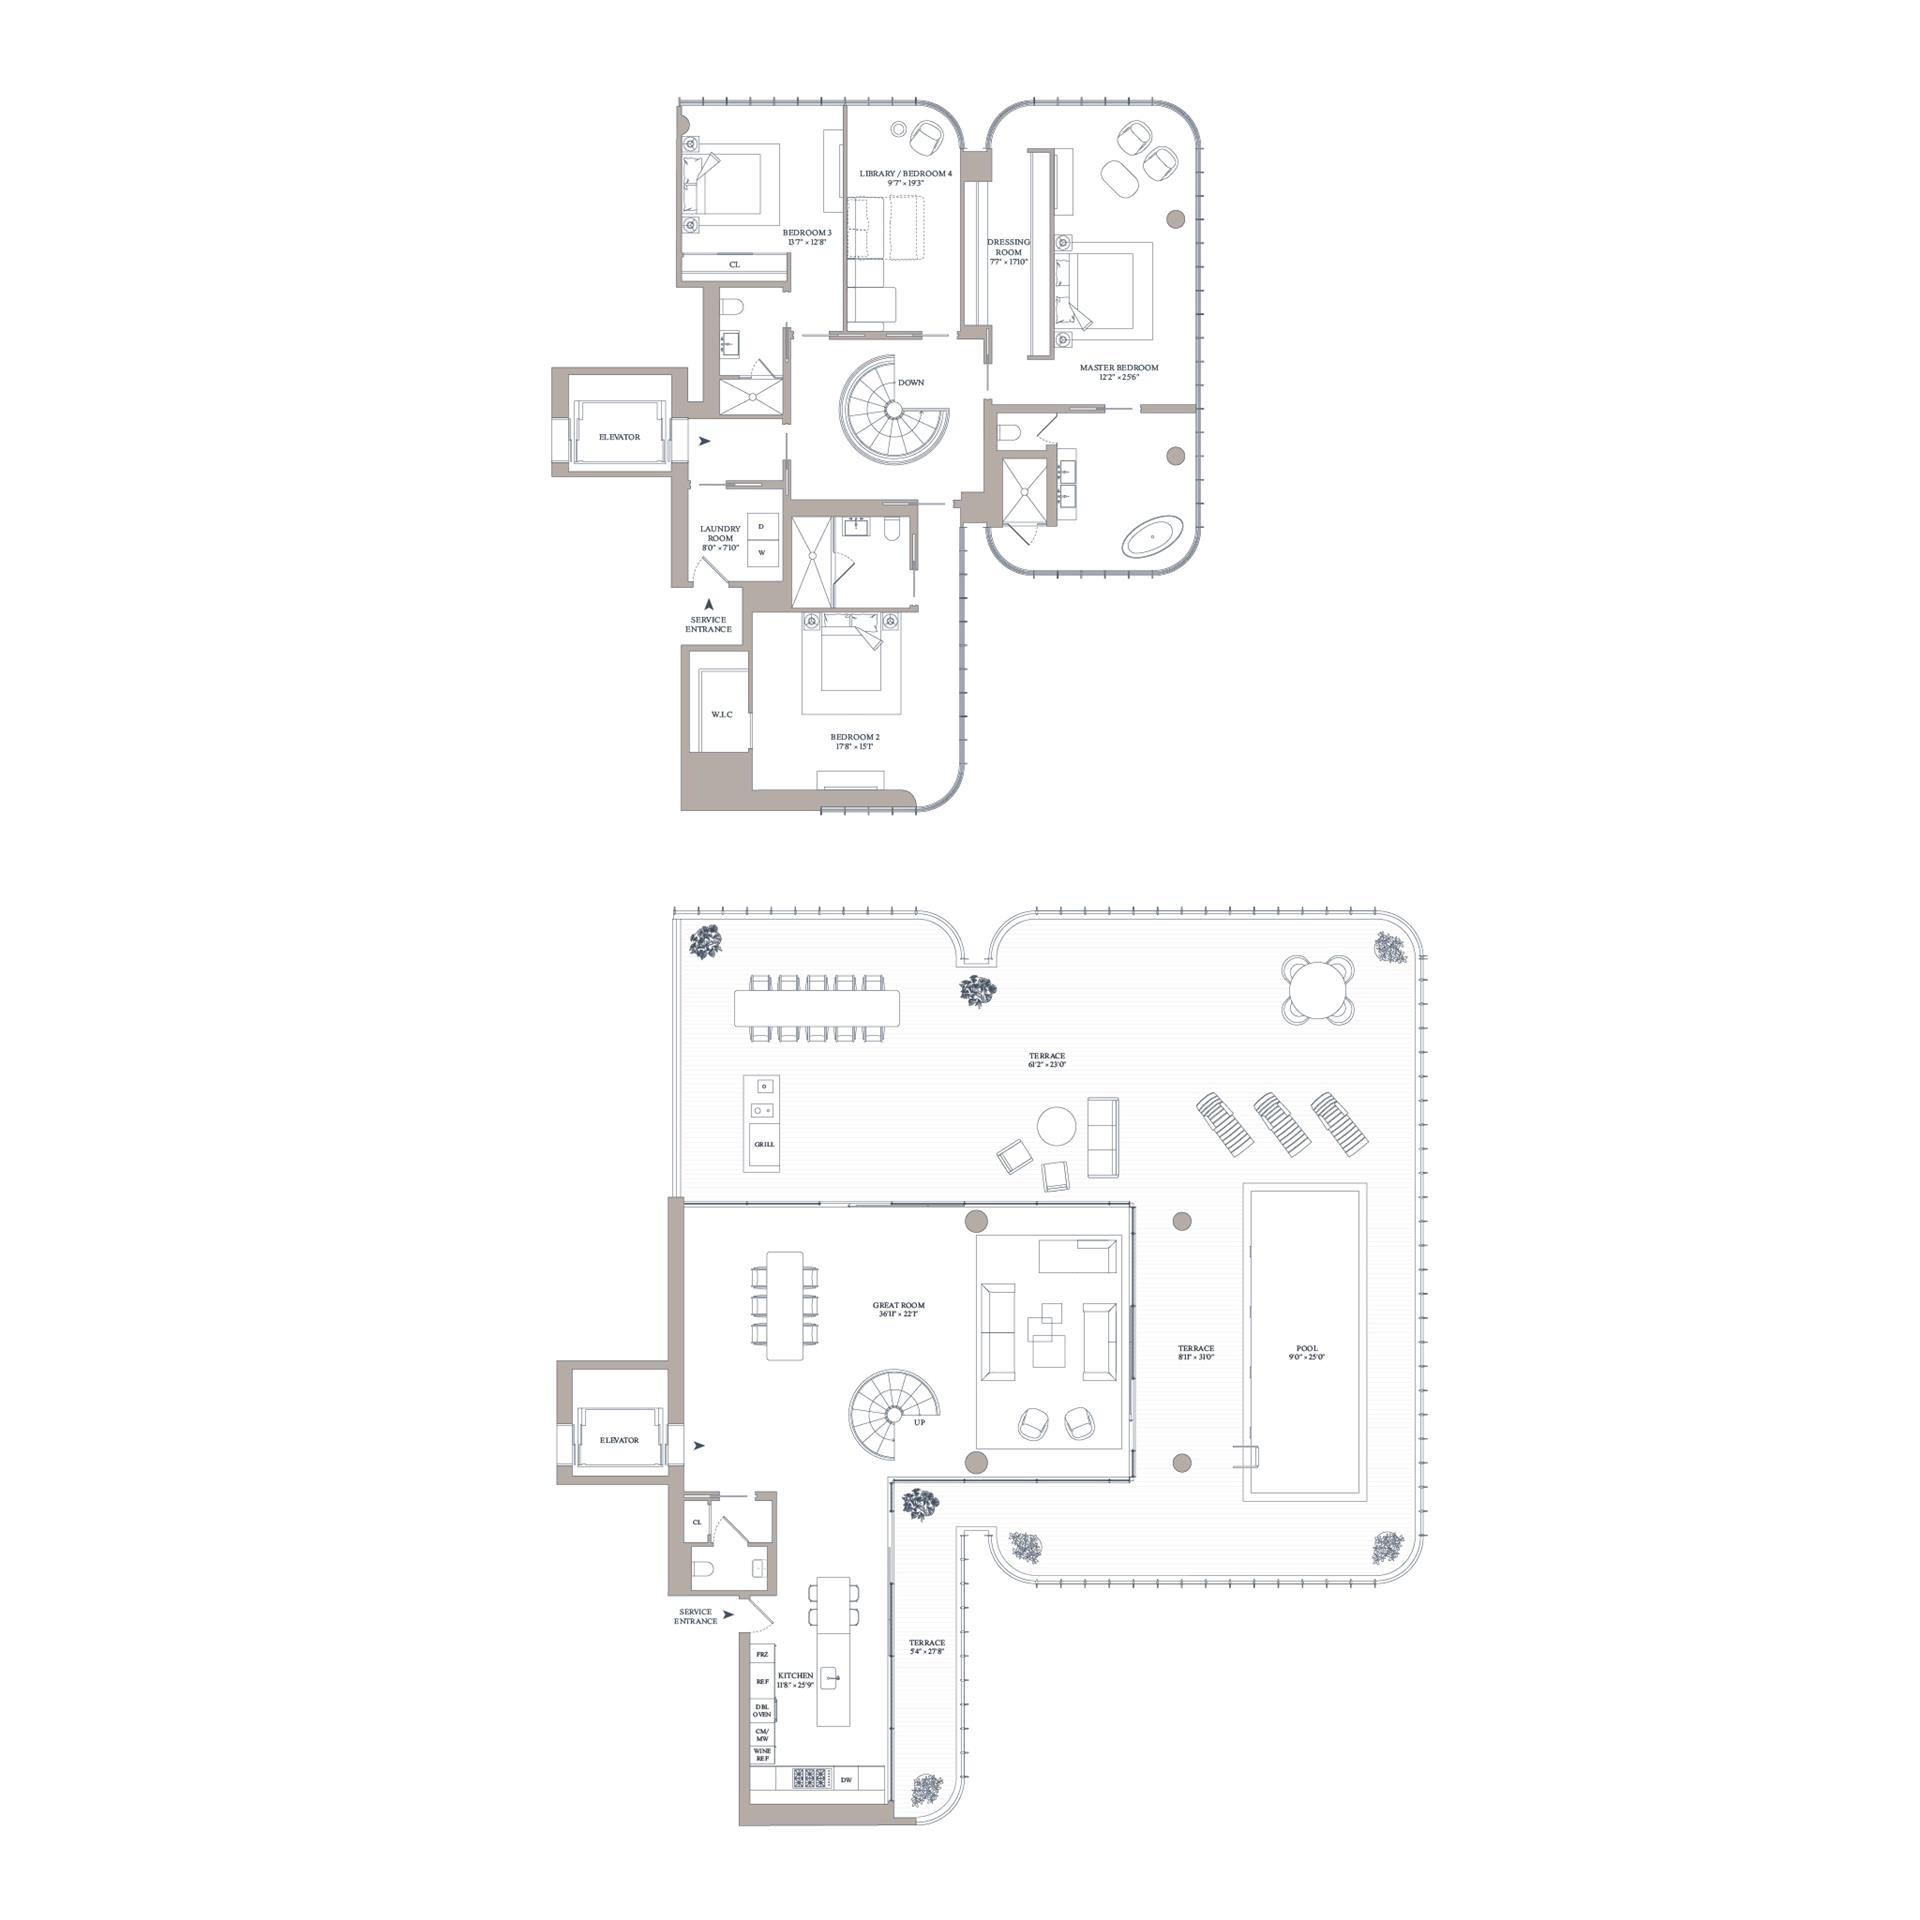 Floor plan of 565 Broome St, N16B - SoHo - Nolita, New York